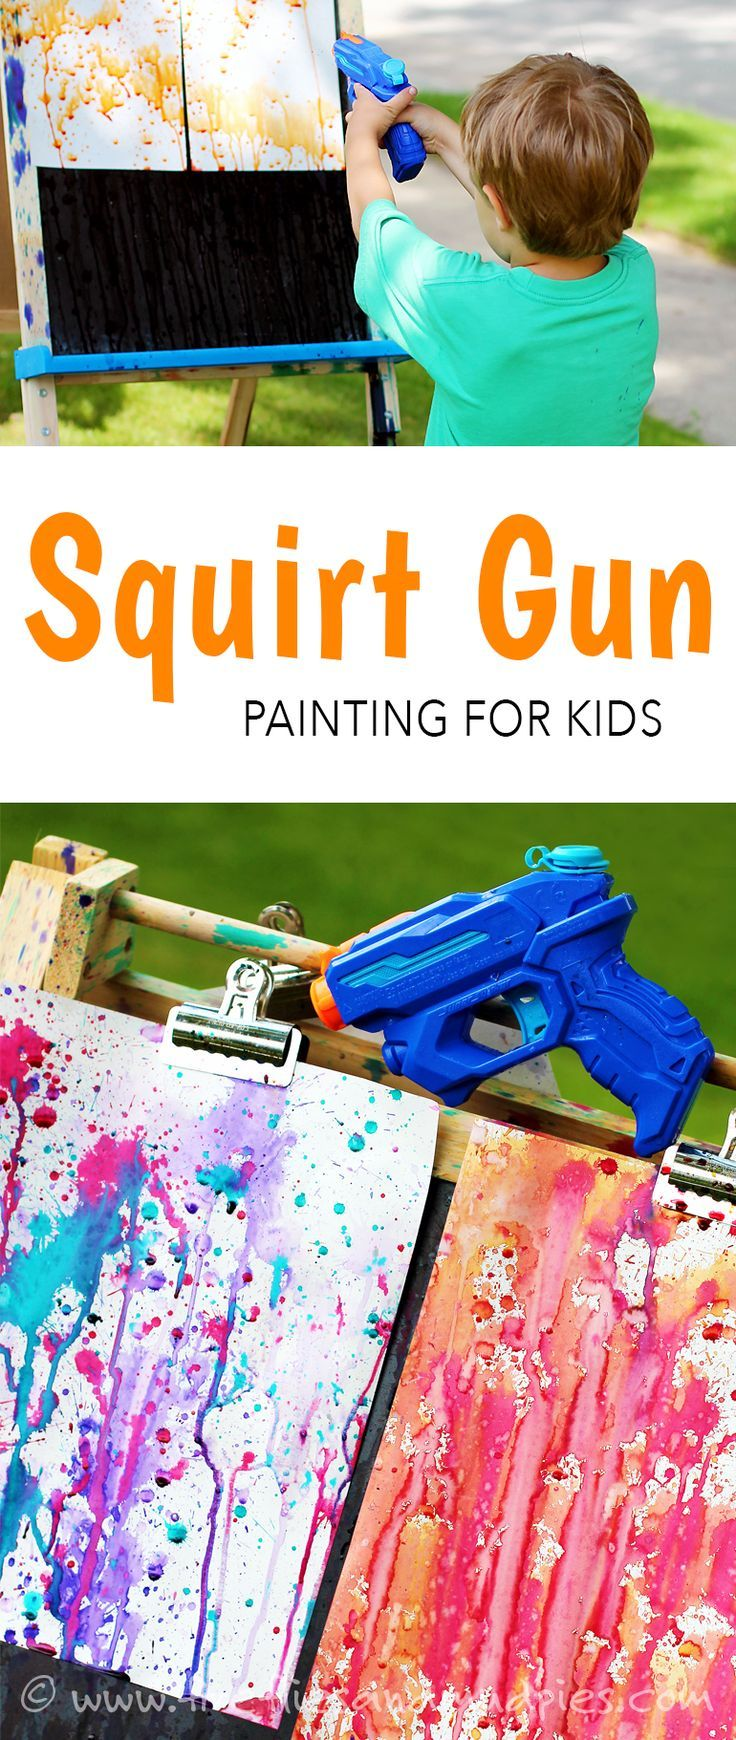 Squirt Gun Painting! Kids will ask to do this again and again!   Fireflies and Mud Pies